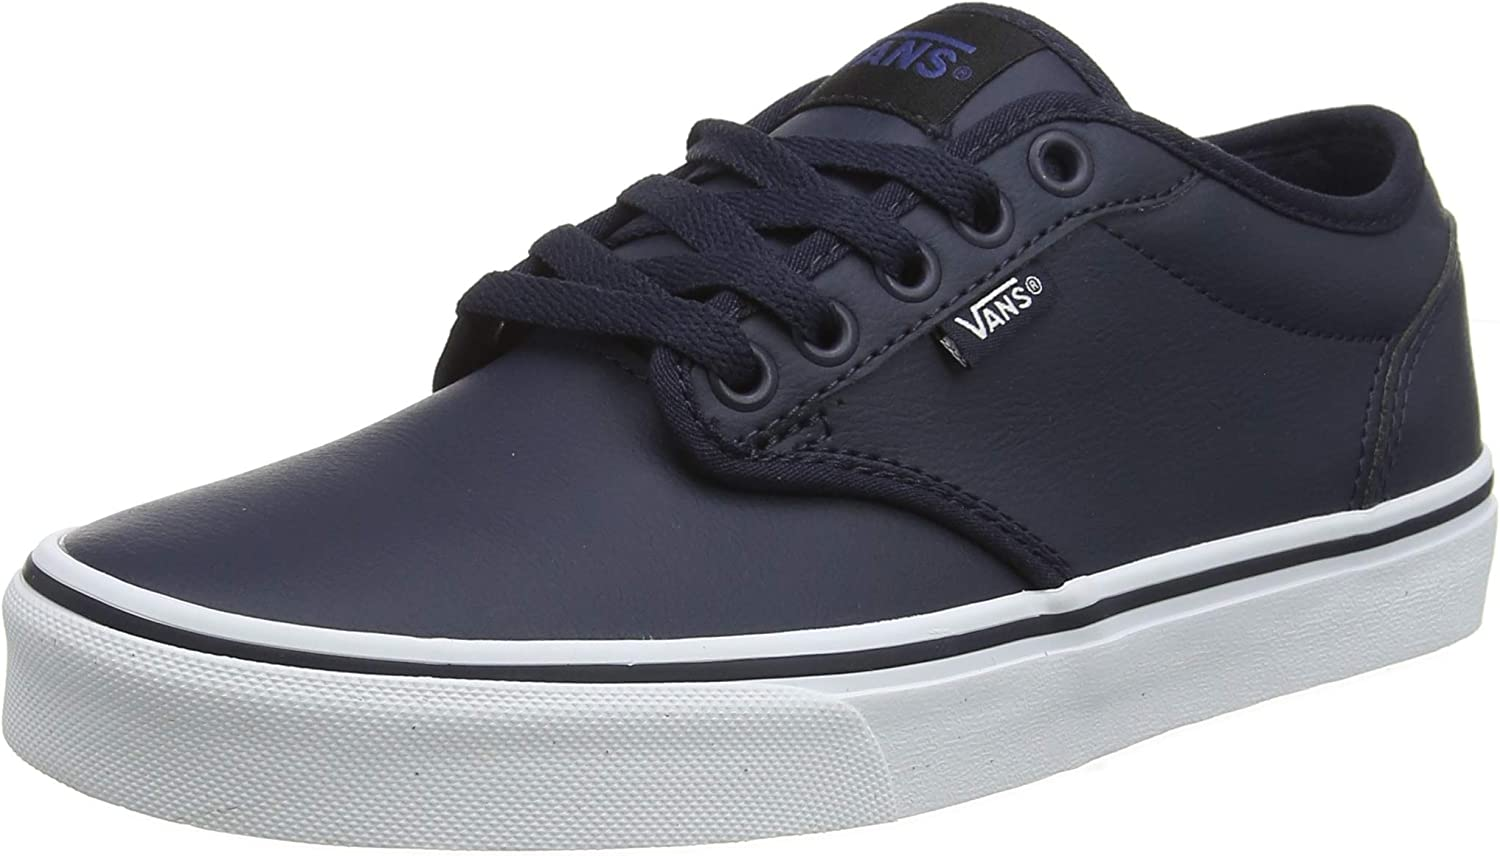 Vans Men's's Atwood Synthetic Leather Trainers